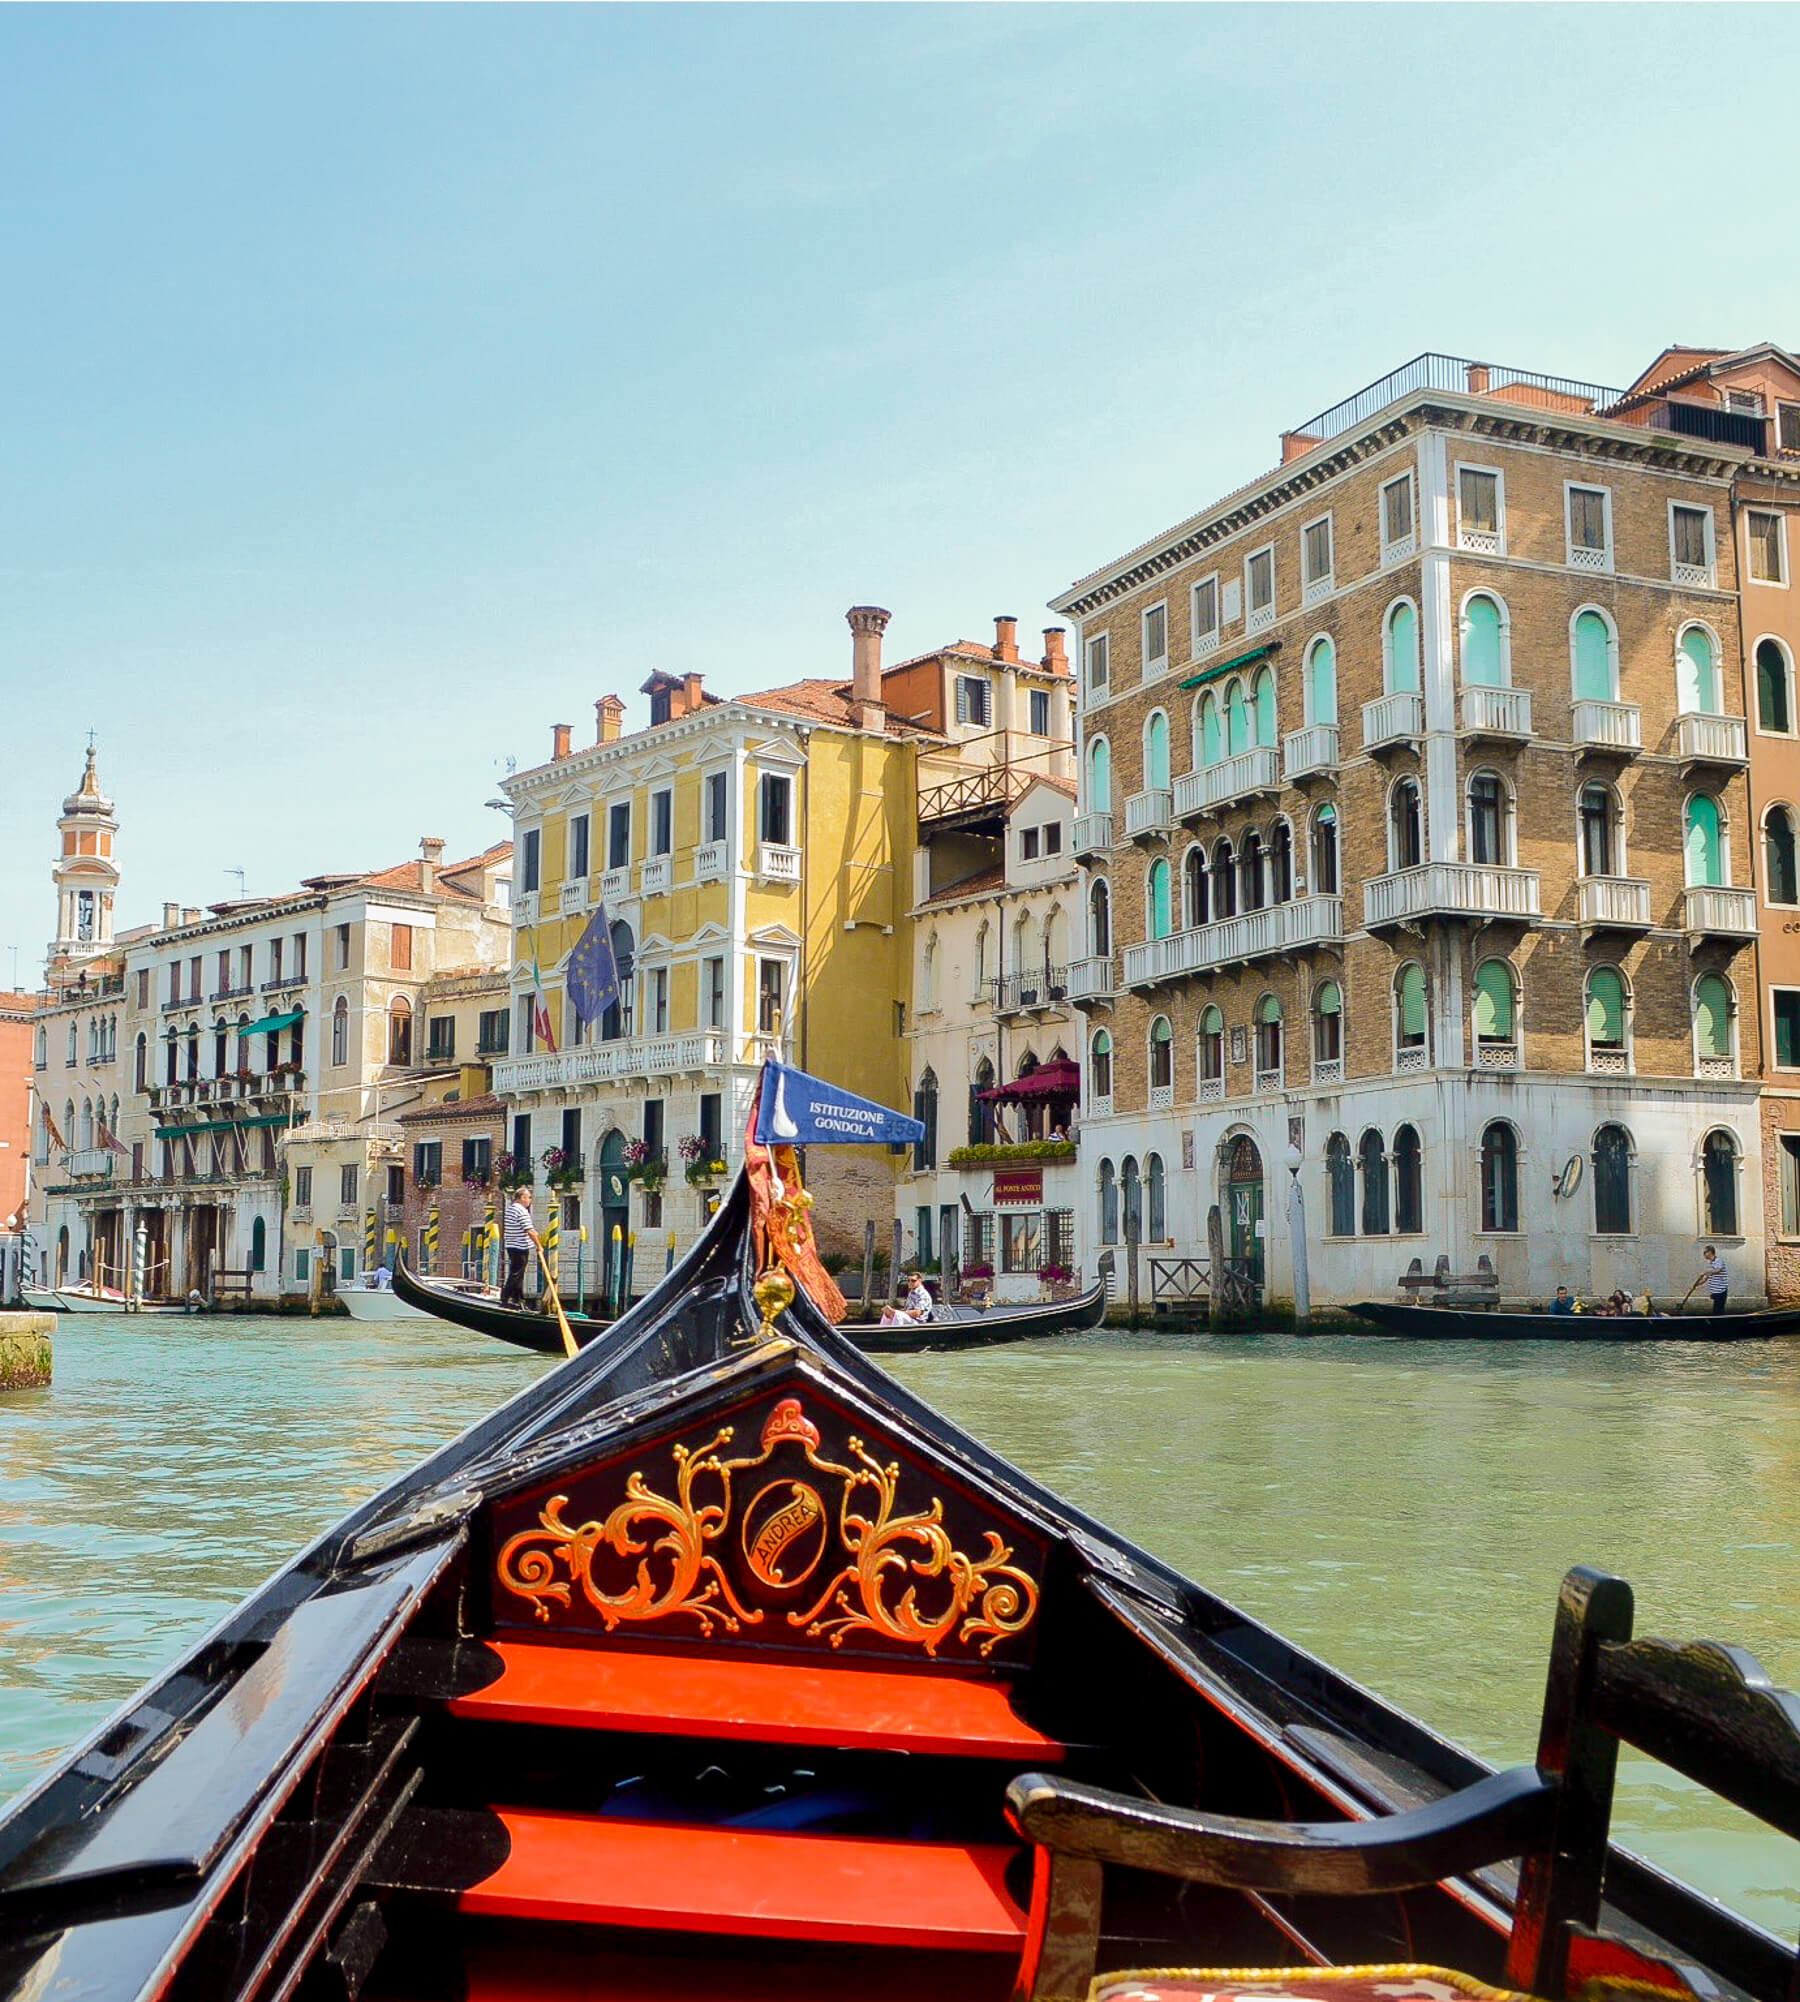 12 THINGS YOU MUST DO IN VENICE